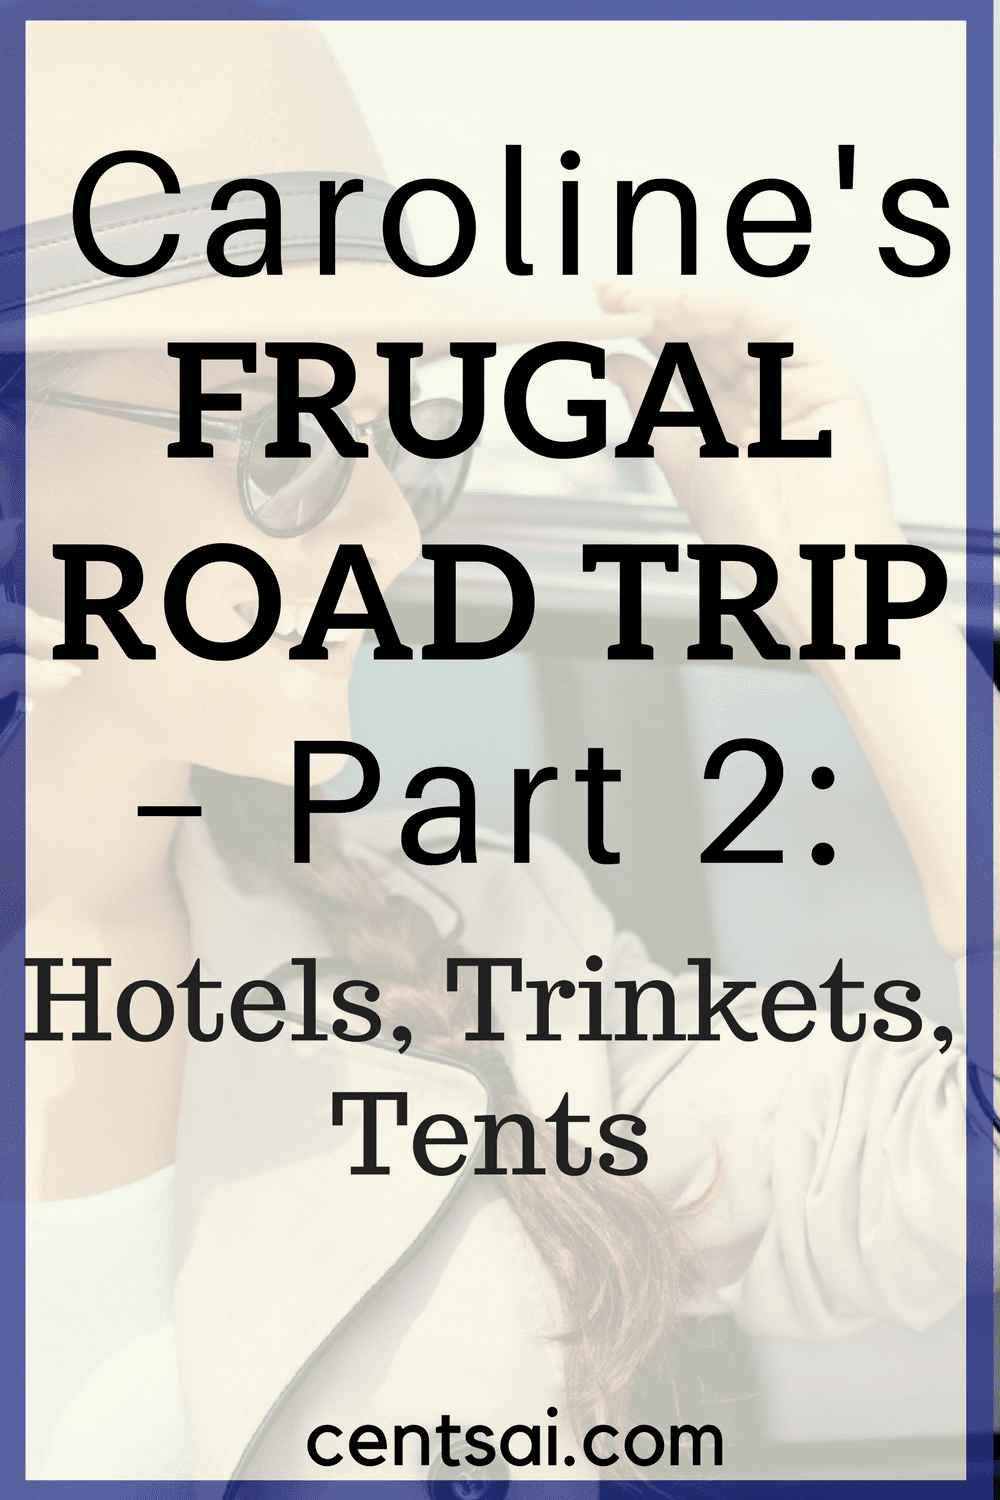 Caroline's Frugal Road Trip – Part 2: Hotels, Trinkets, Tents. These are all good tips on how to have a frugal travel without breaking your bank!